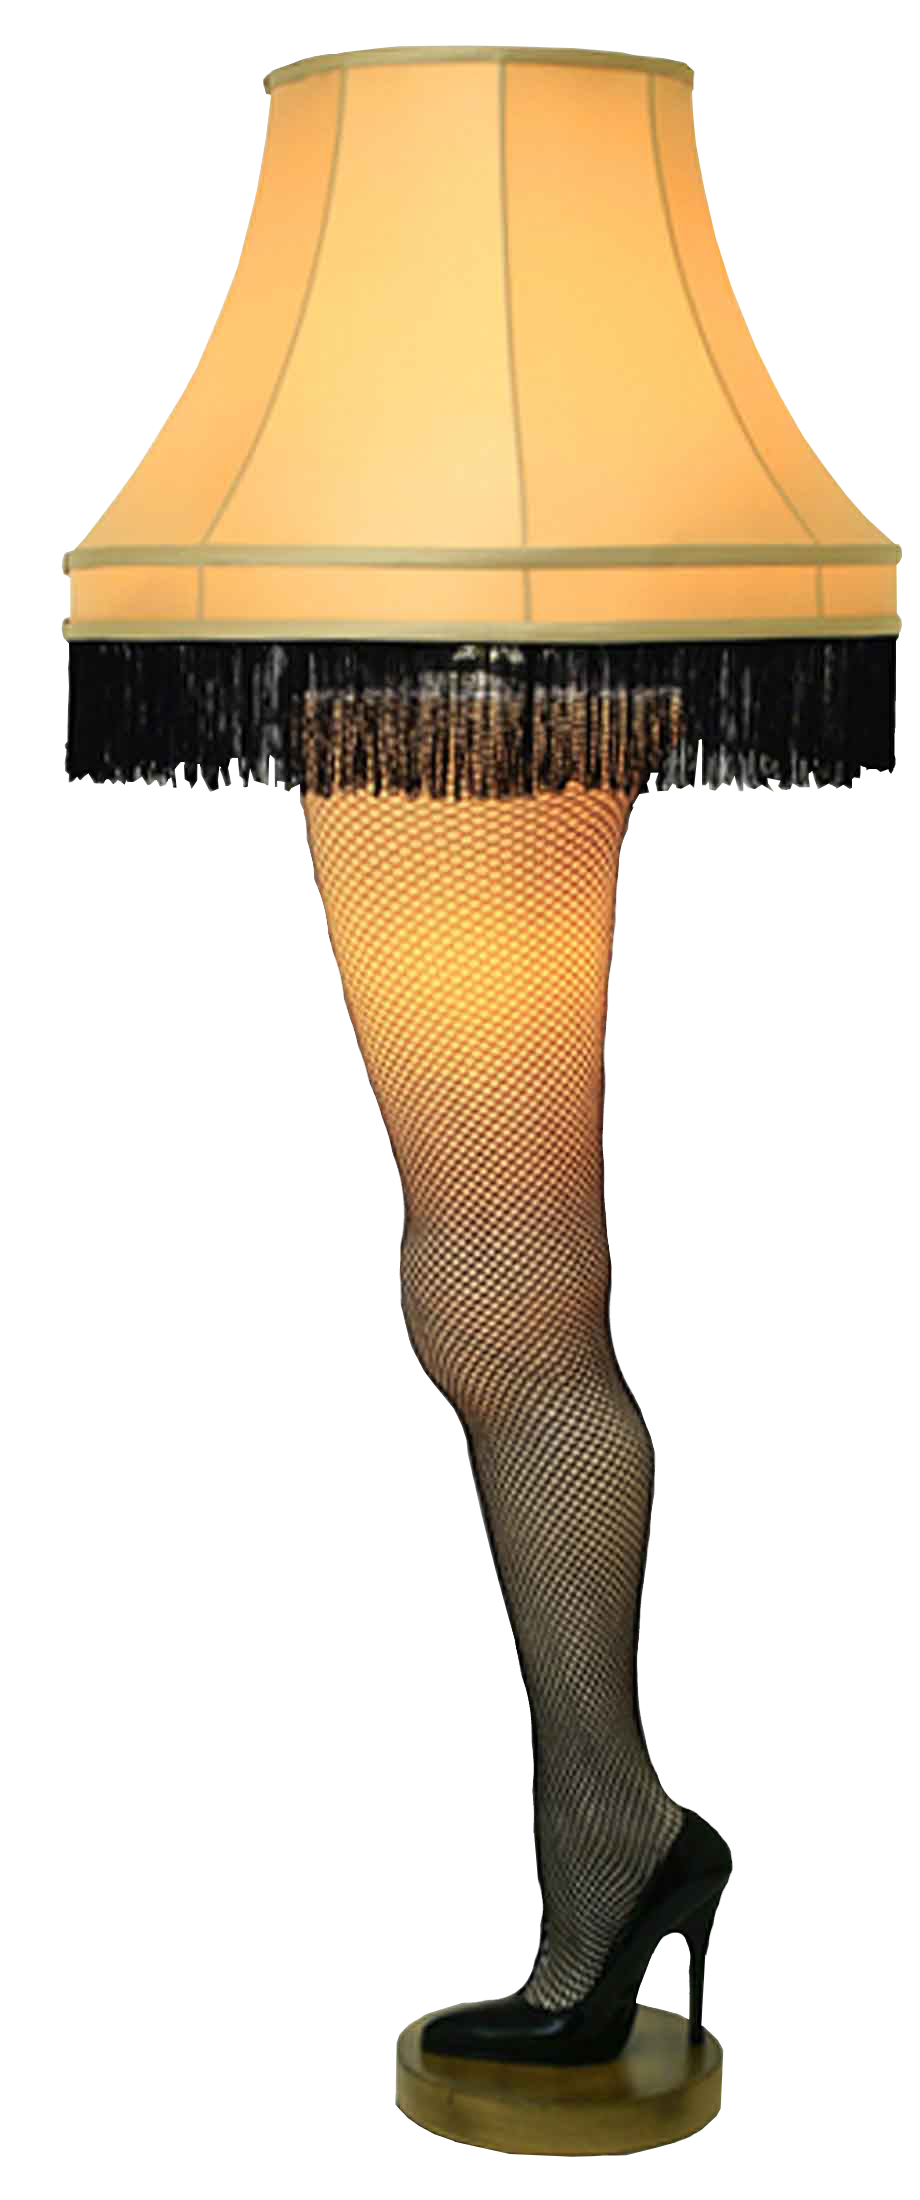 Leg Lamp - Warehouse 13 Wiki